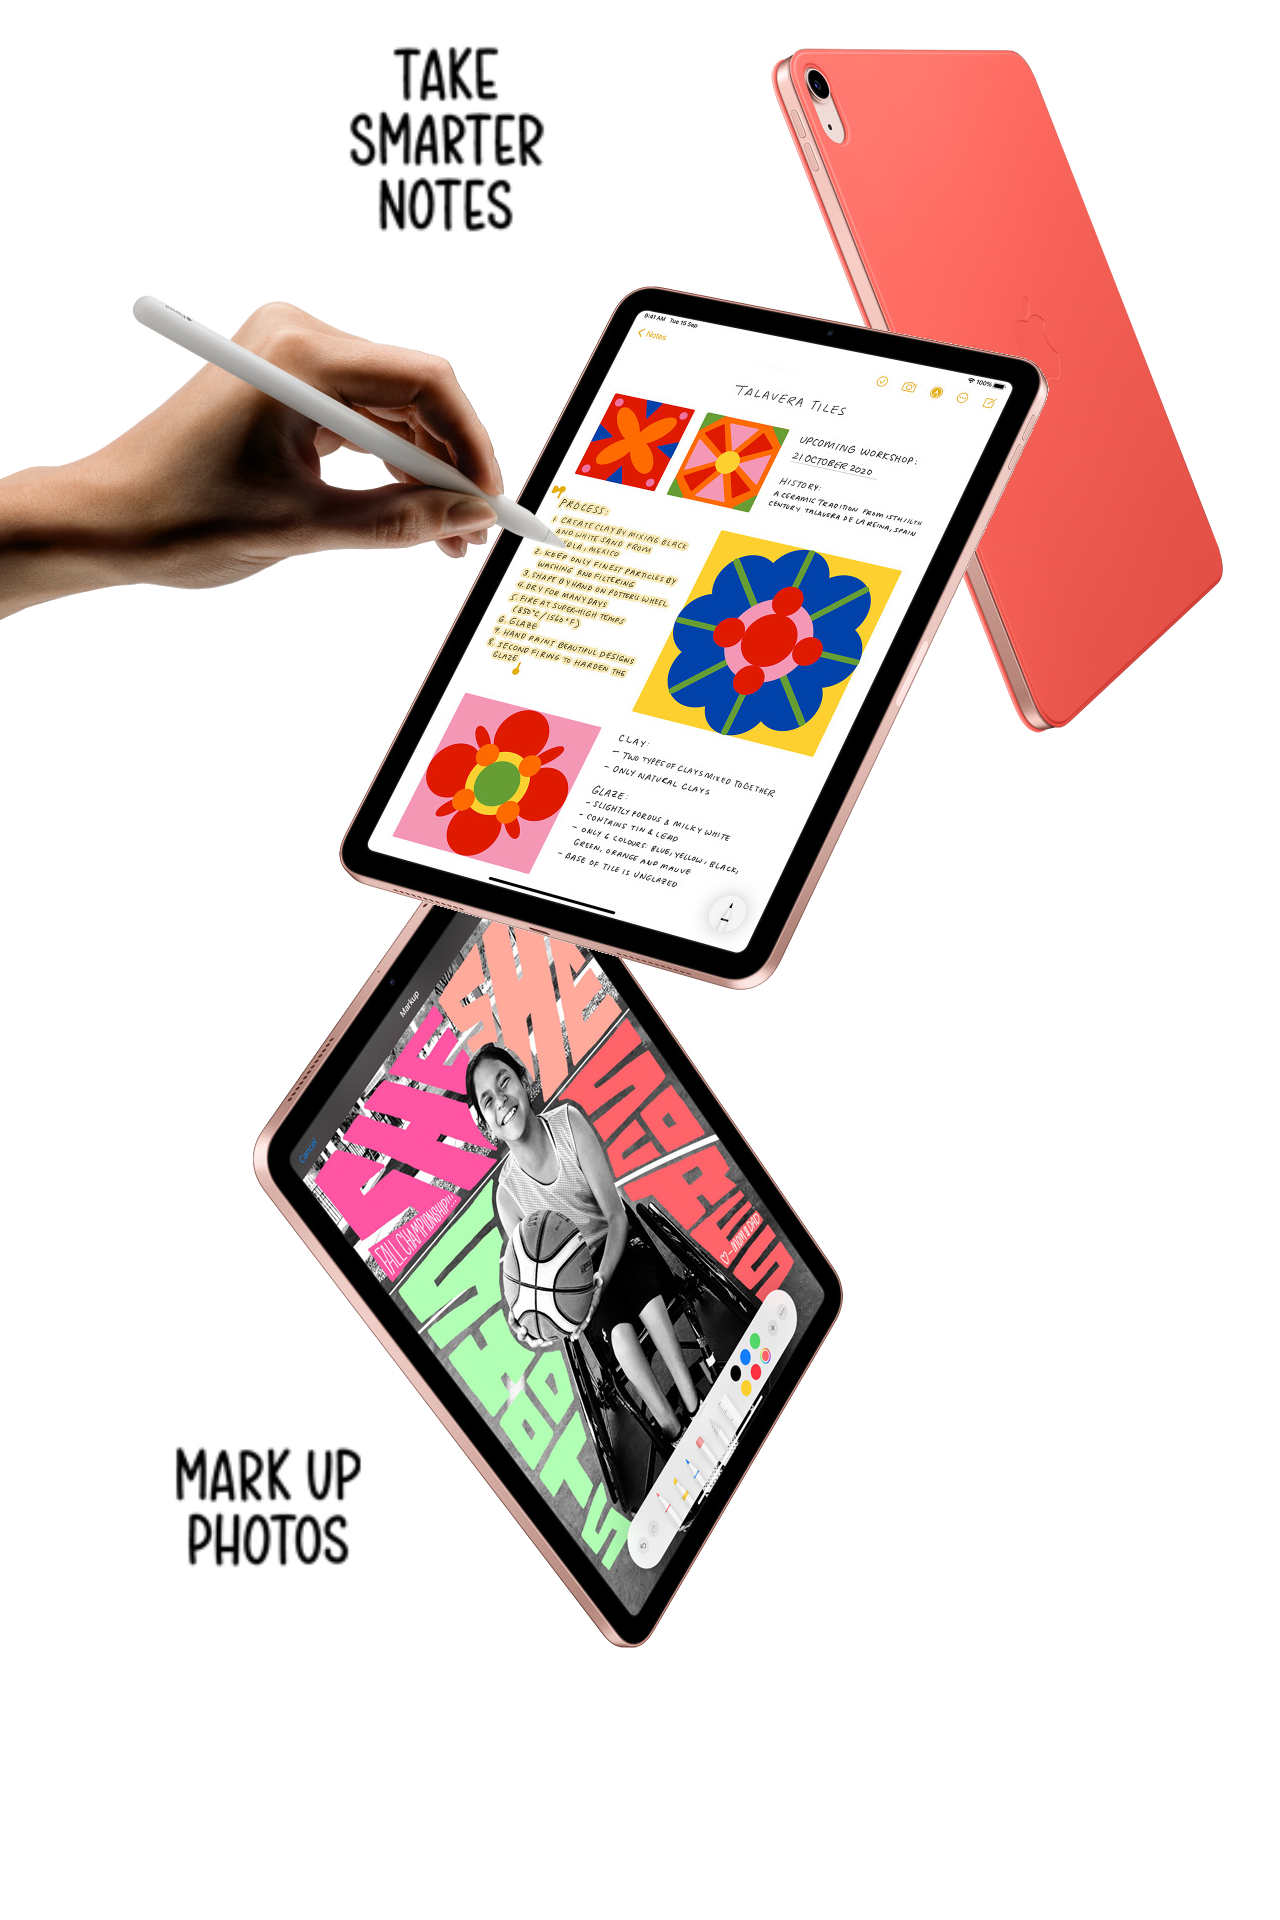 Apple IPad Air 10.9 Inch features Smart notes